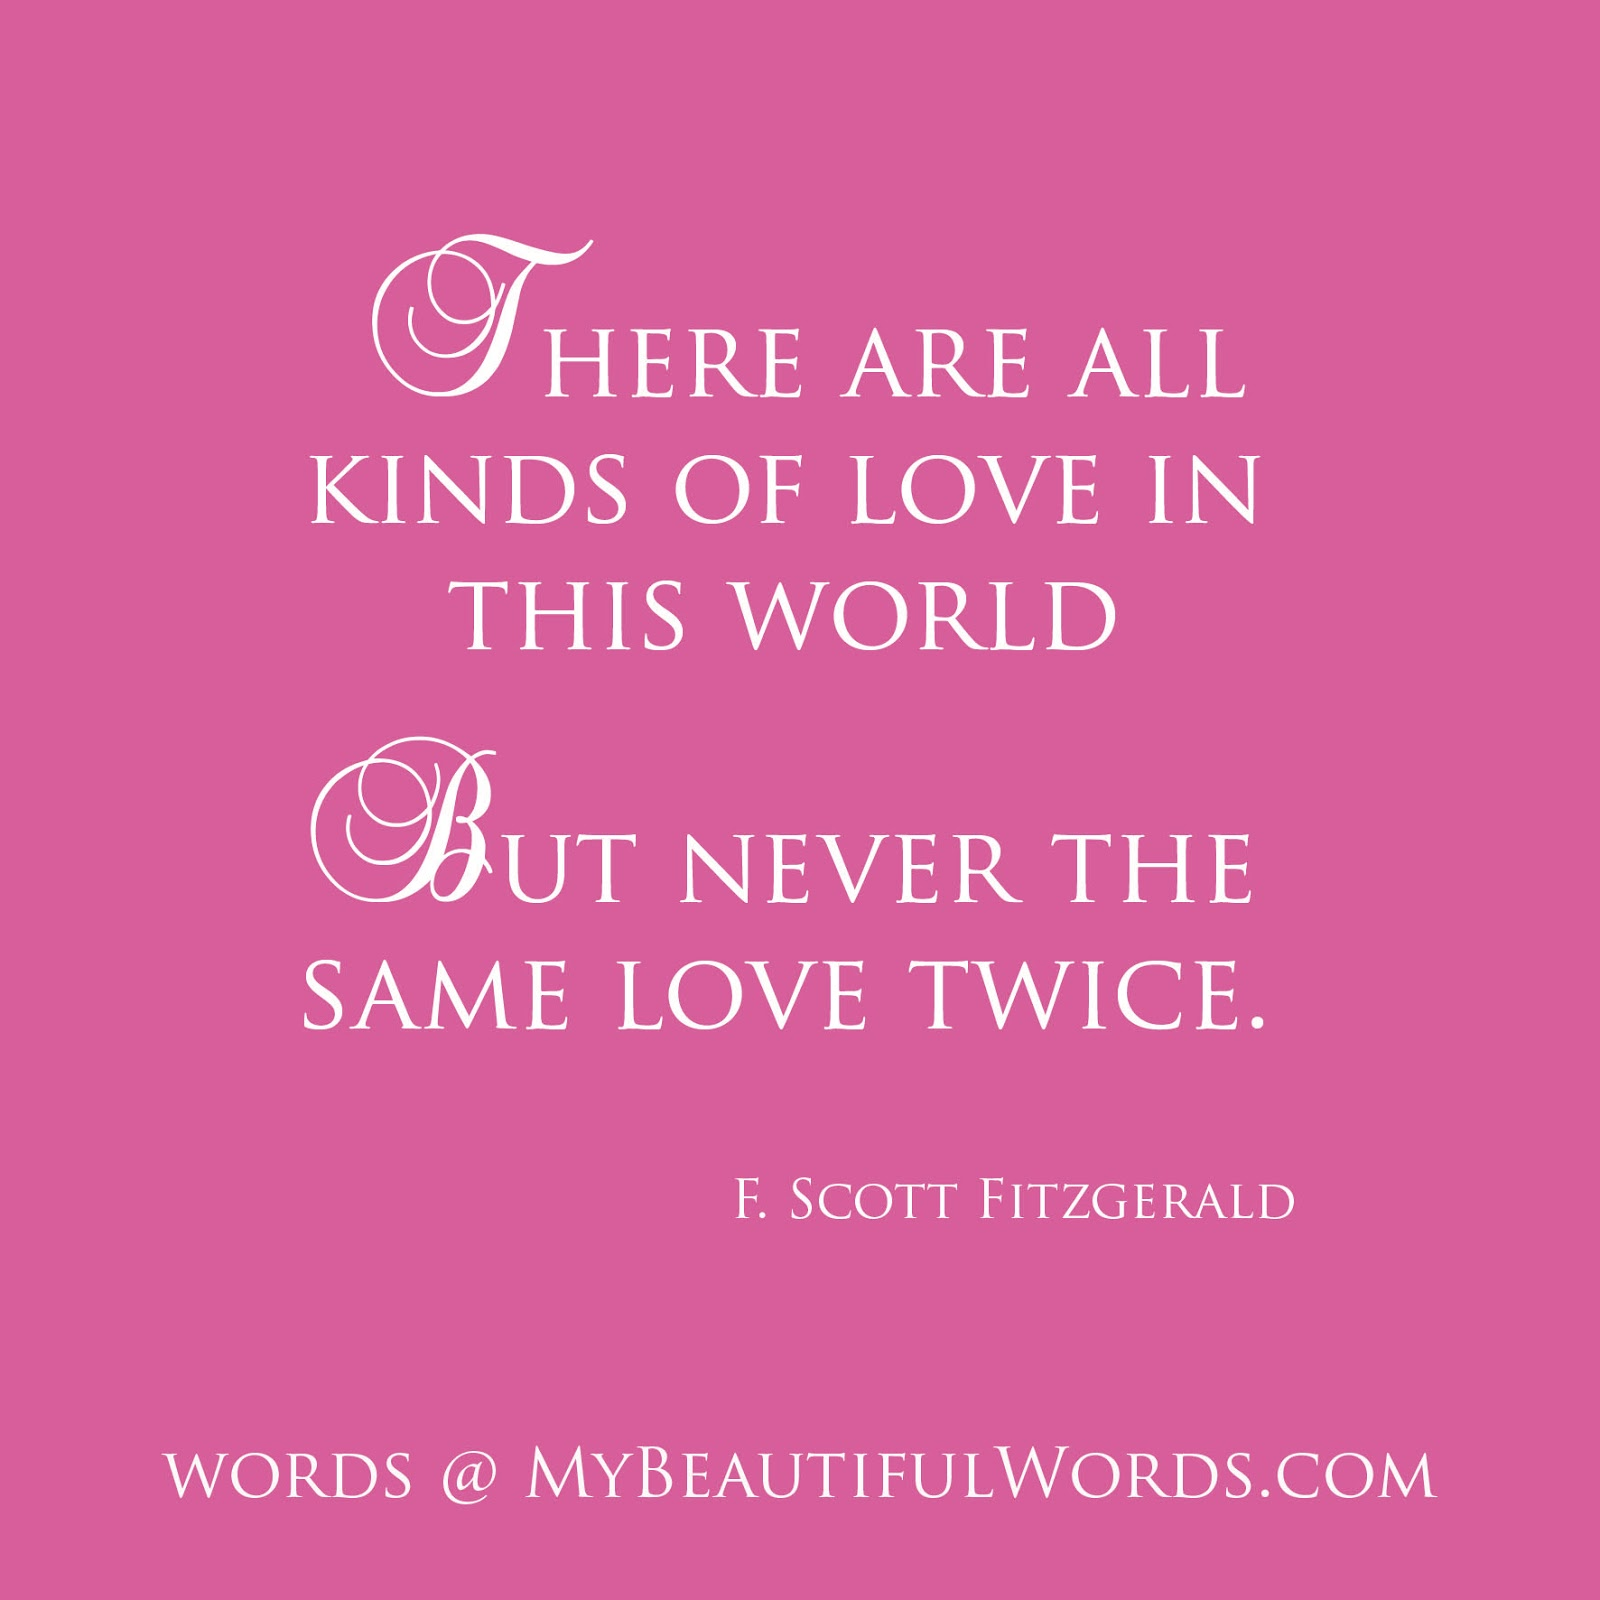 Love Quotes F Scott Fitzgerald My Beautiful Words. Love.